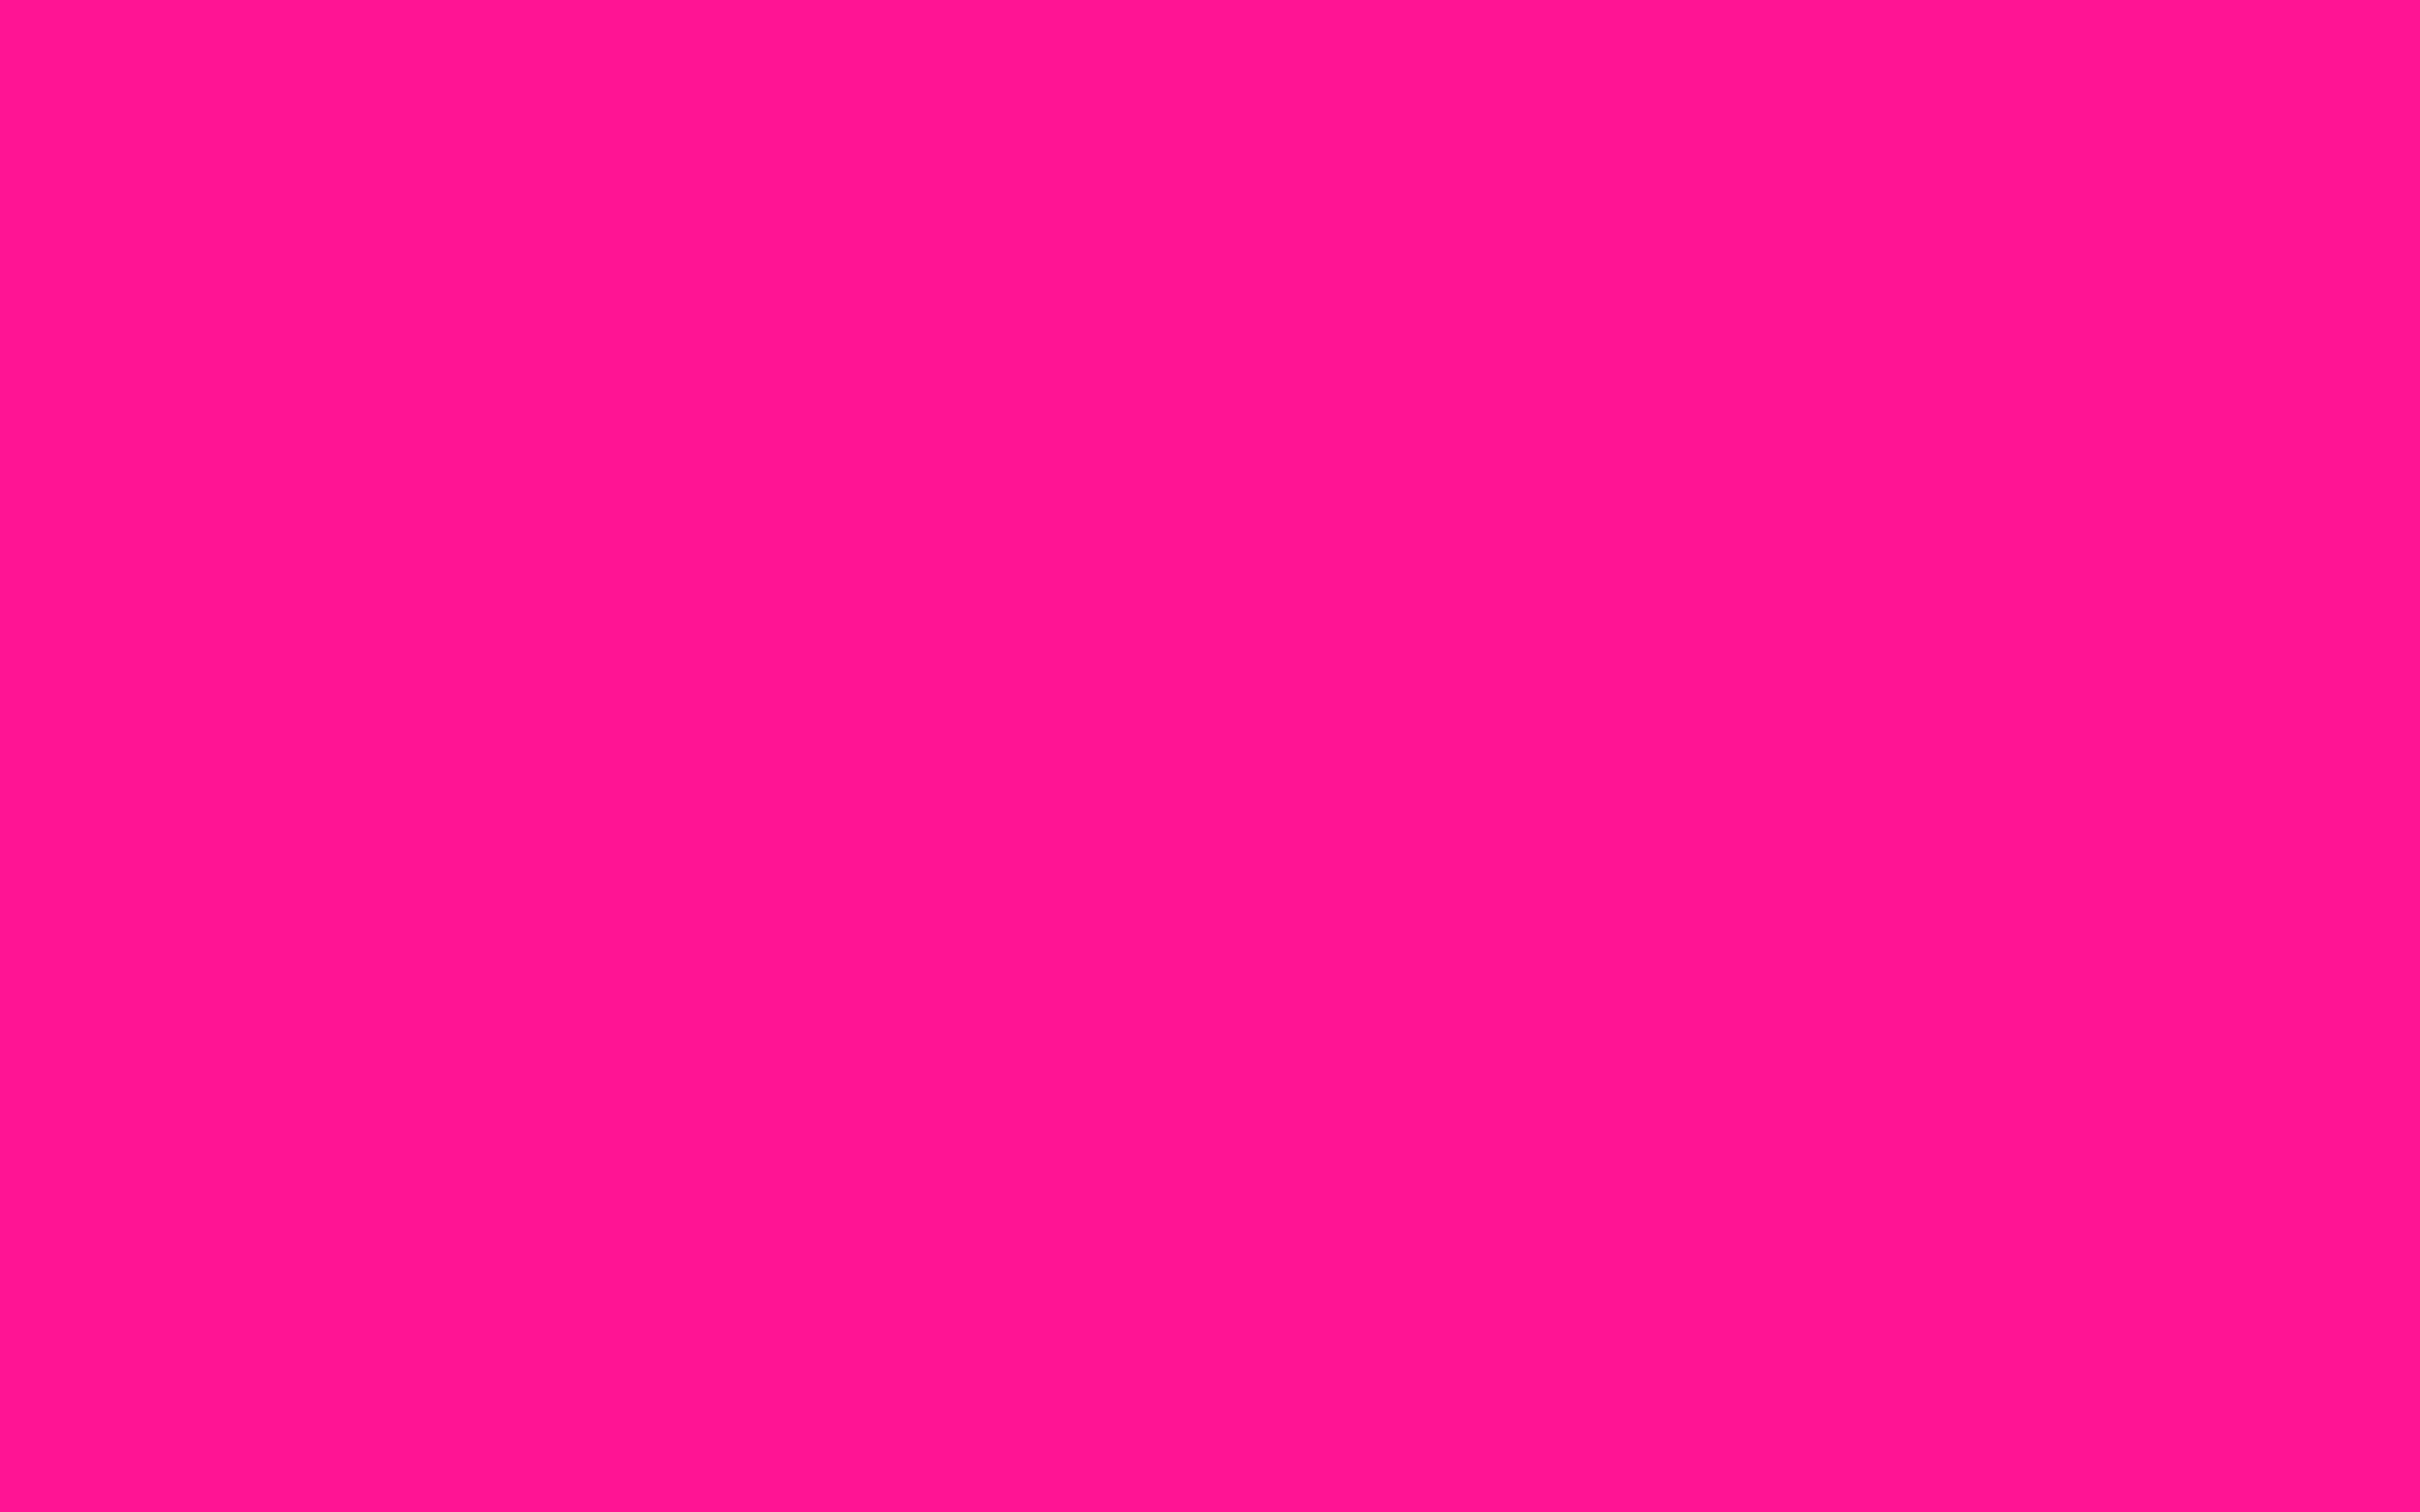 2880x1800 Fluorescent Pink Solid Color Background